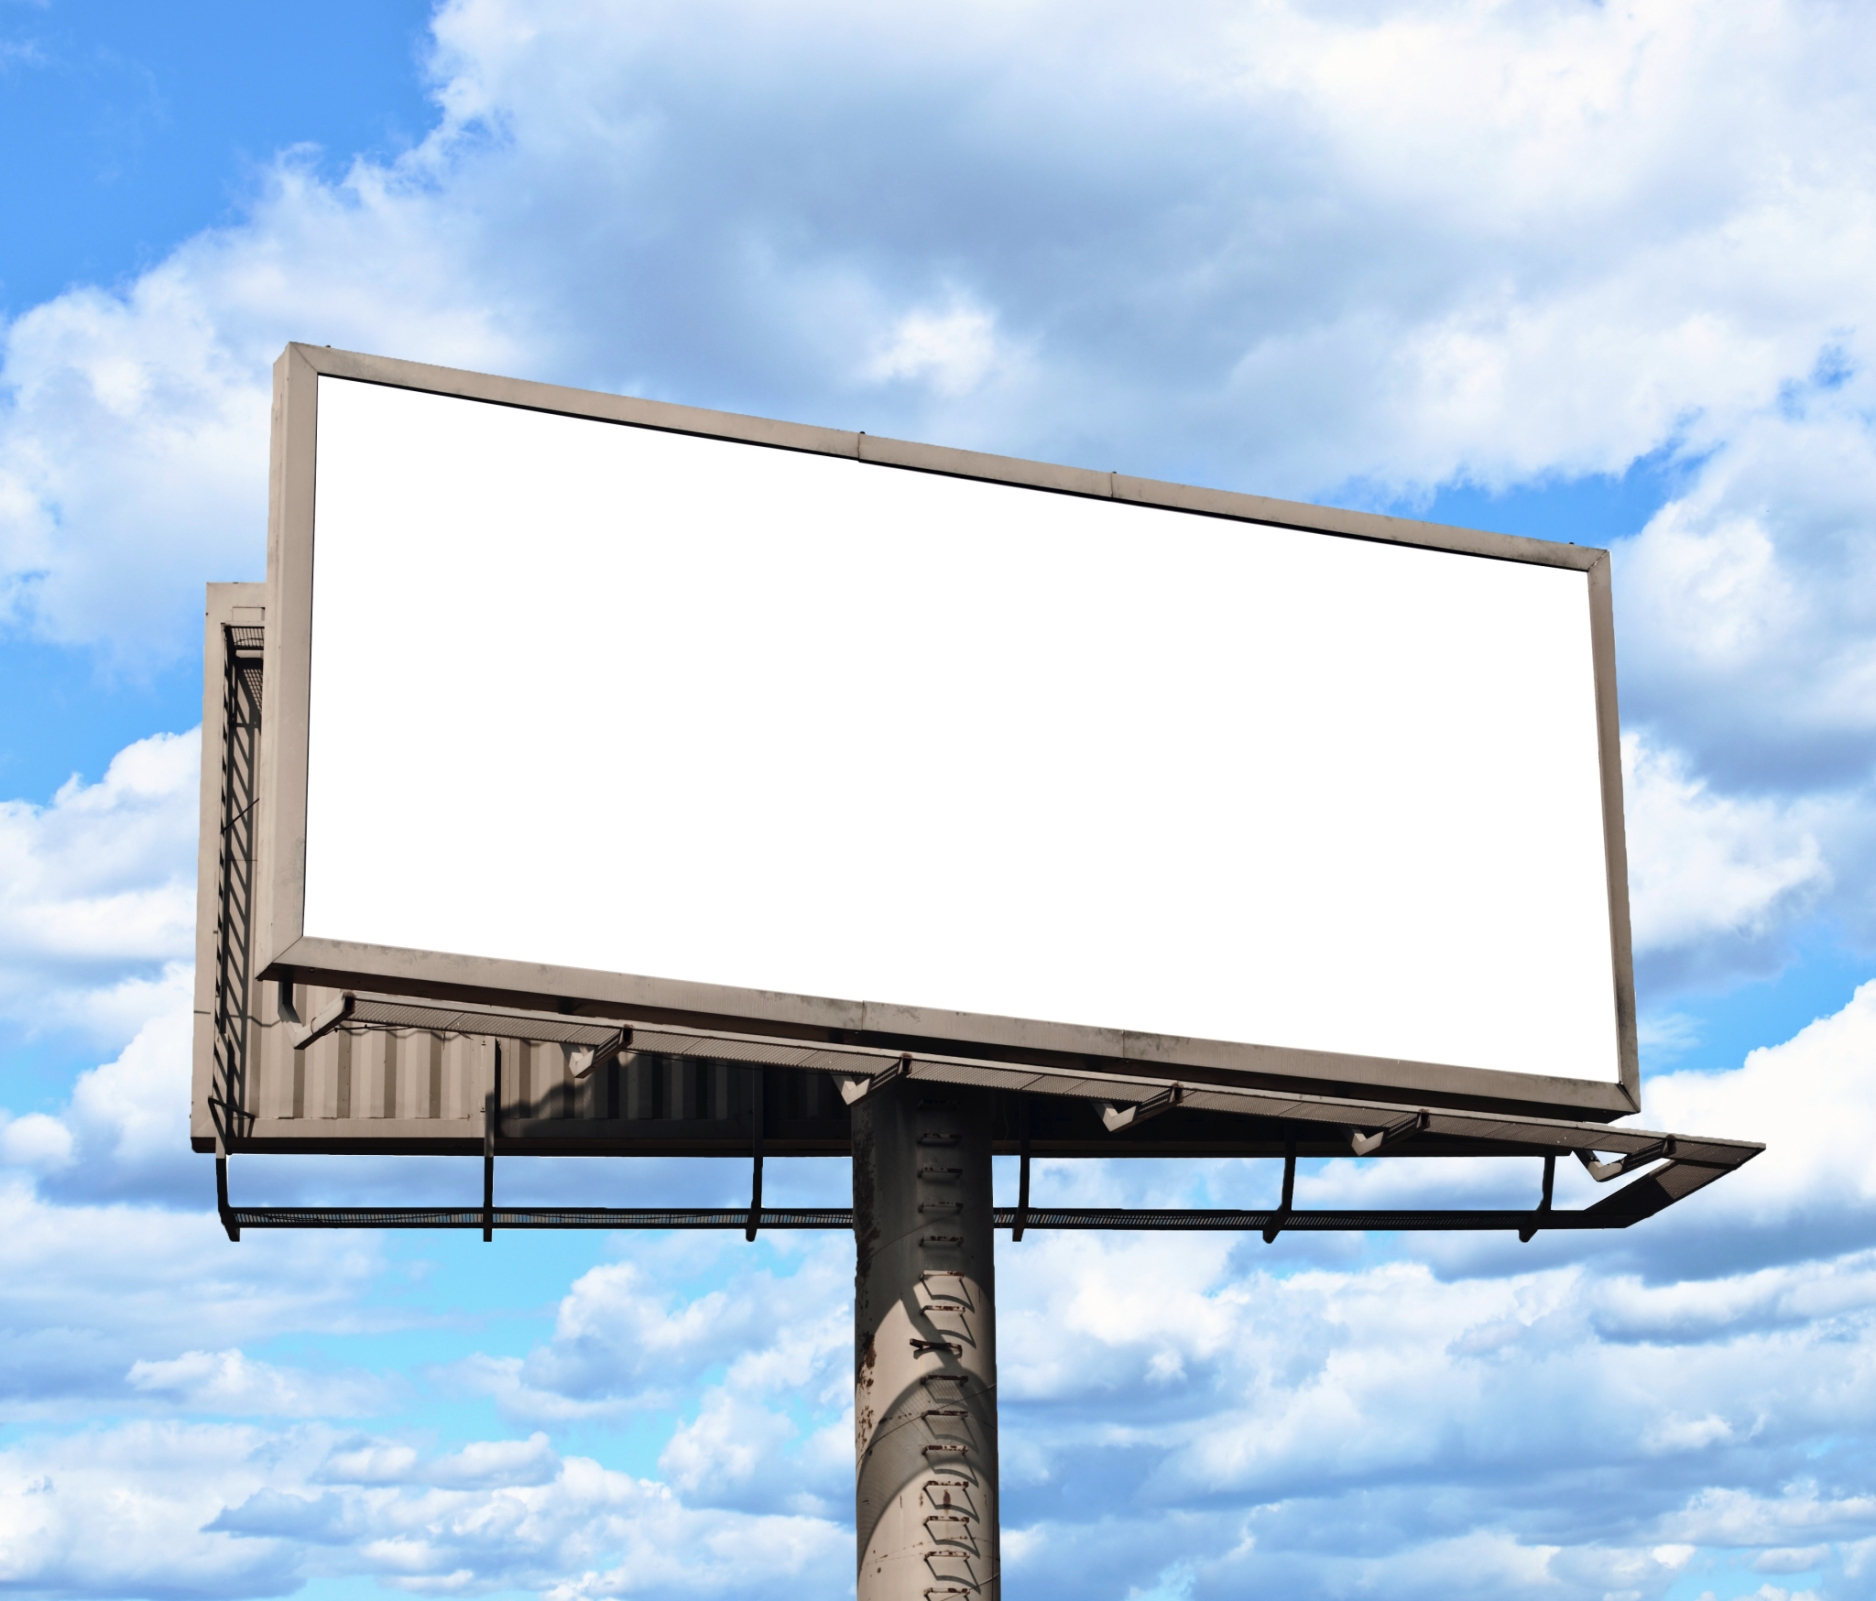 Billboards are coming to the Mitchell Freeway. Picture: file image